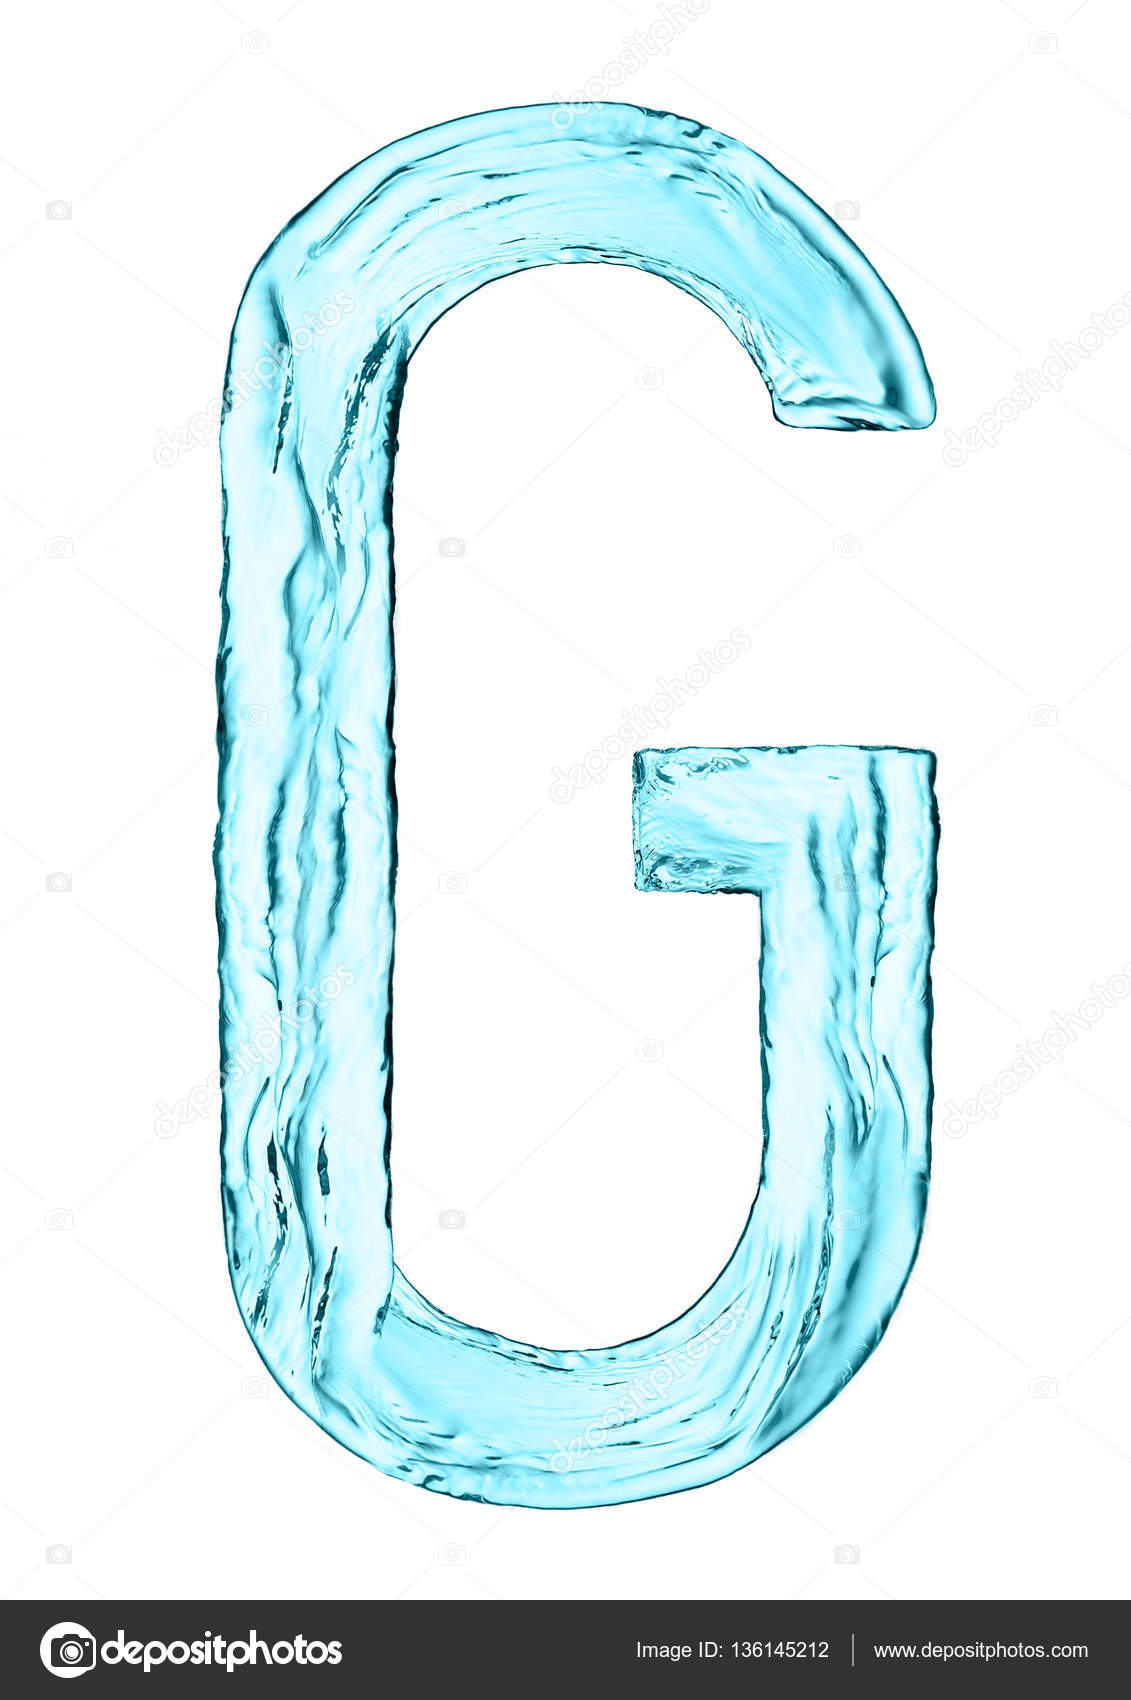 Water splash letter g with light blue color stock photo water splash letter g with light blue color stock photo altavistaventures Images